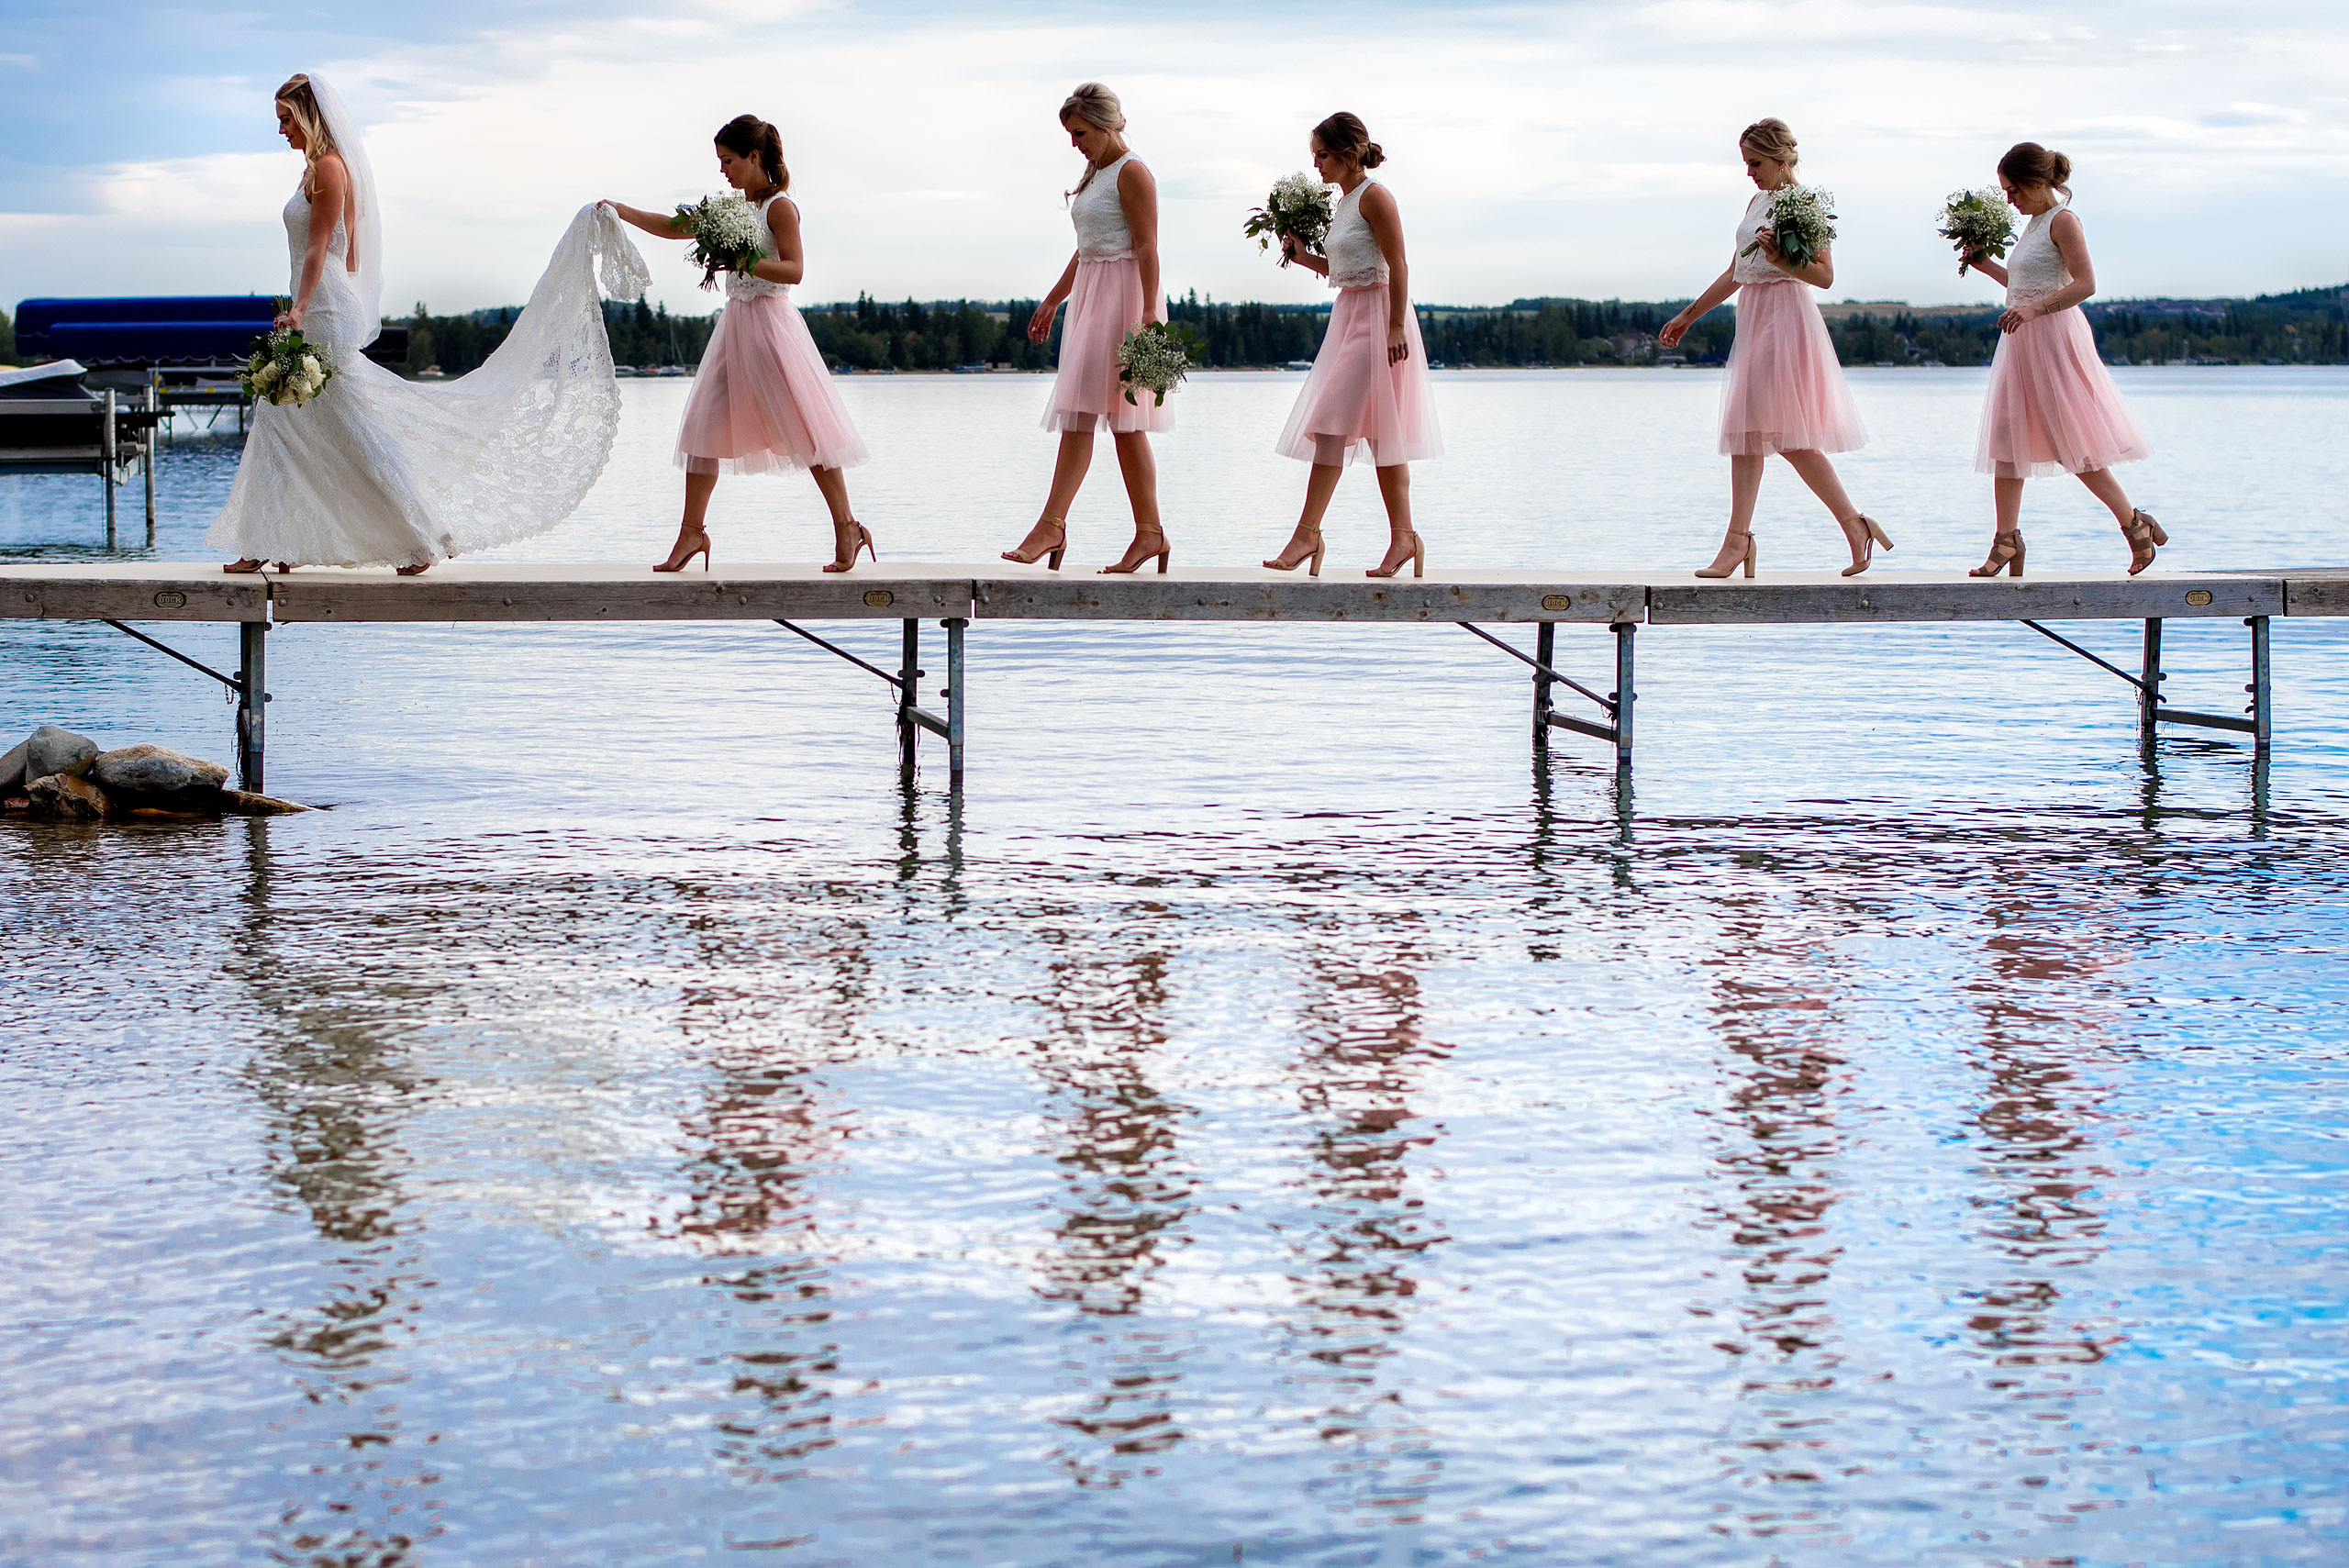 bridesmaids walking behind a bride on a dock by top calgary wedding photographer sean leblanc